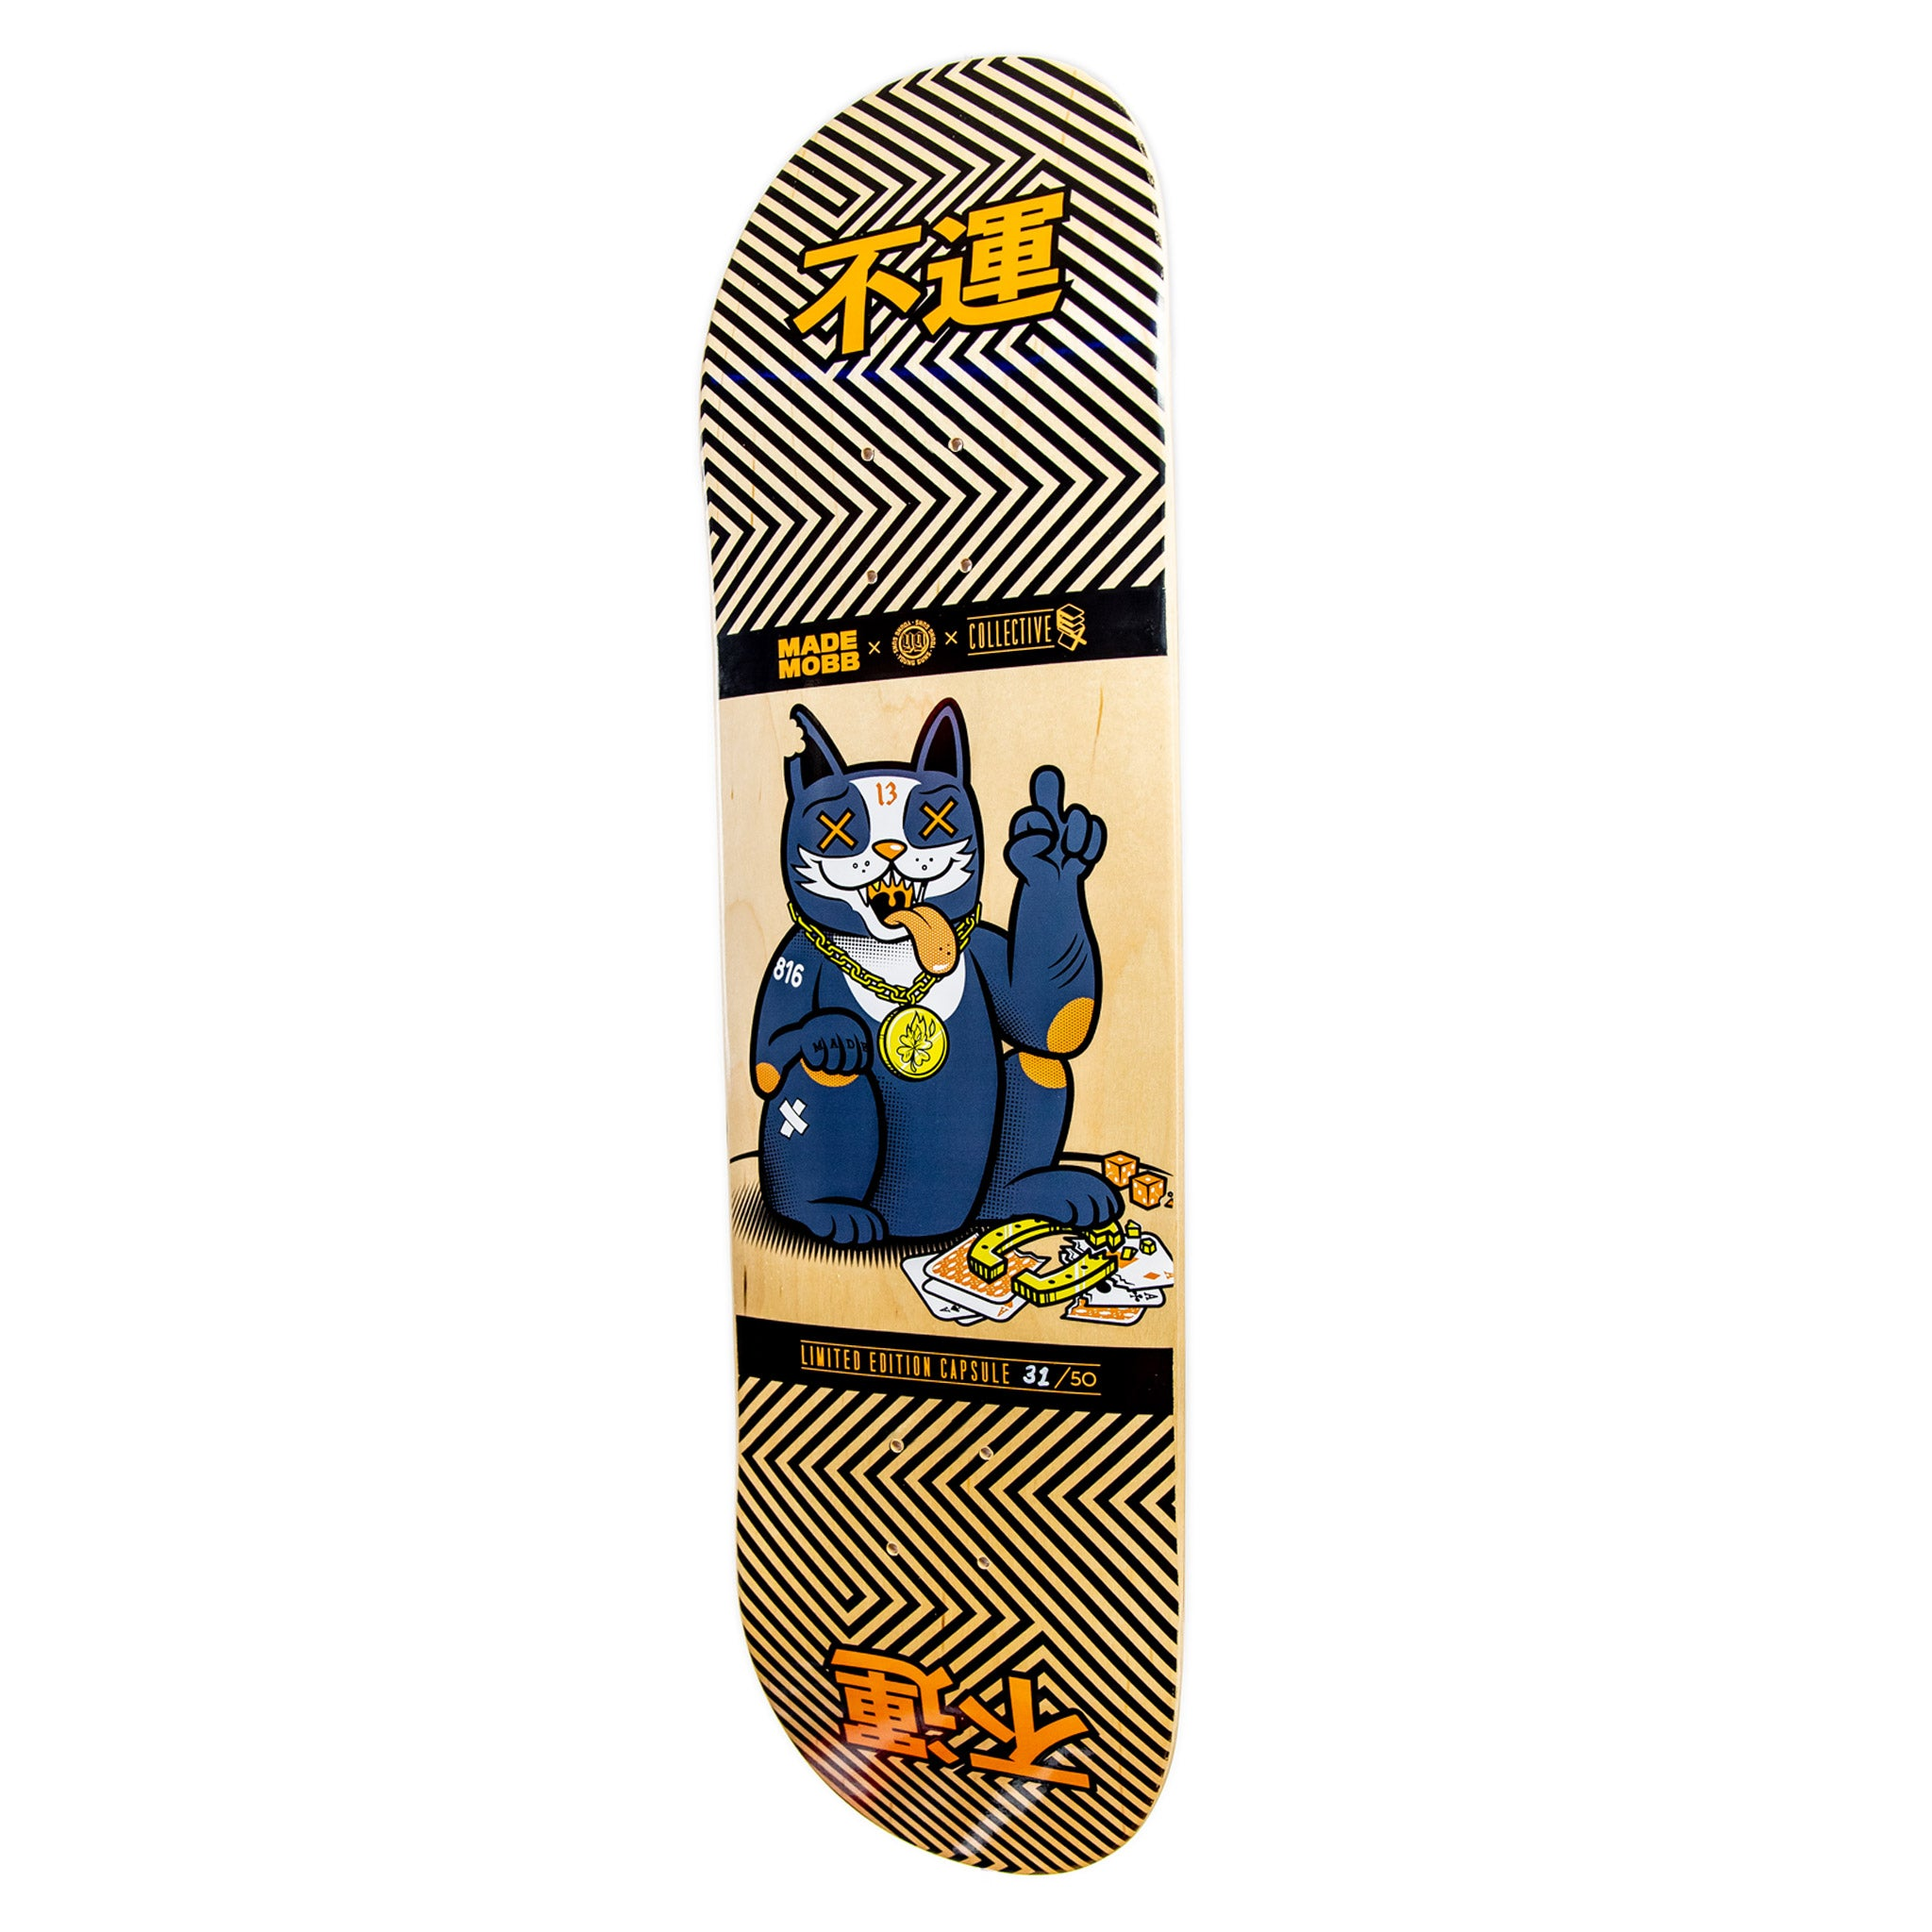 Triple Threat BLAKCATS Skate Deck